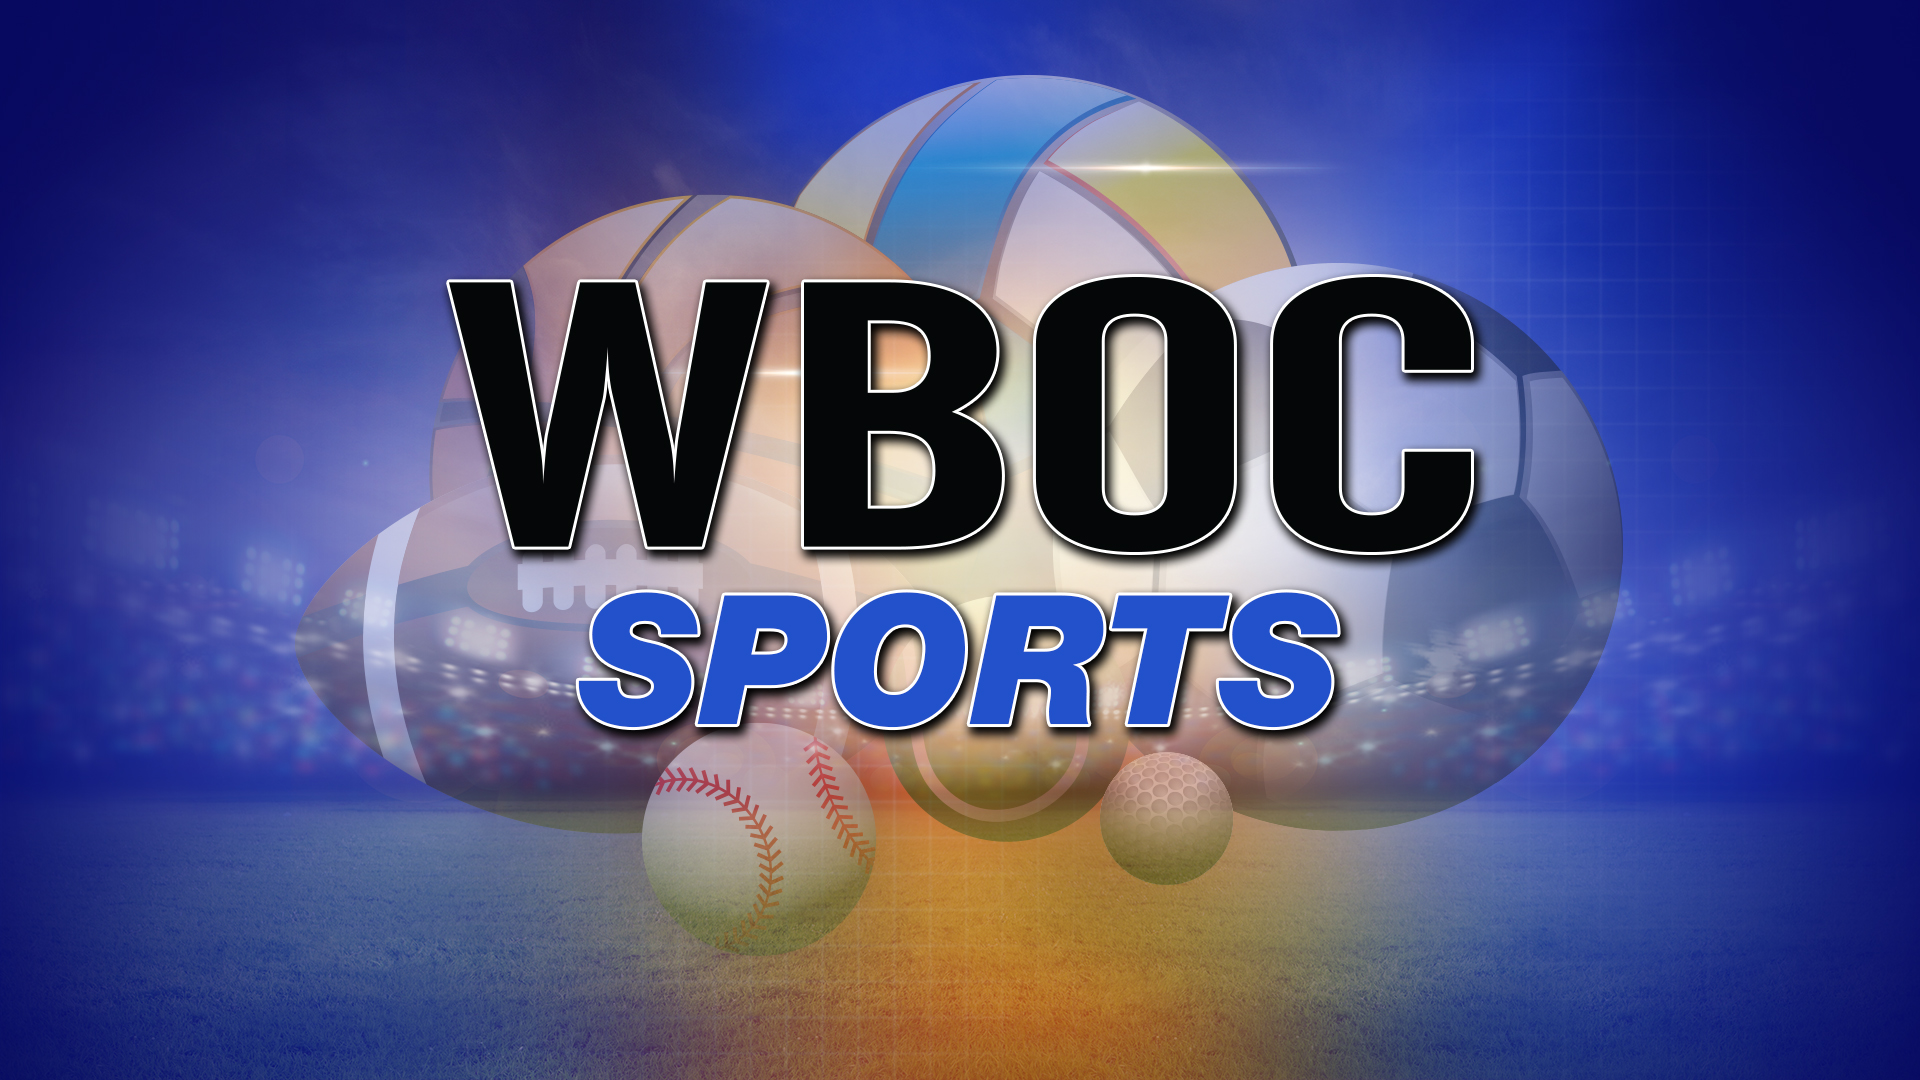 WBOC SPORTS REPORT, TUESDAY, DECEMBER 1, 2015